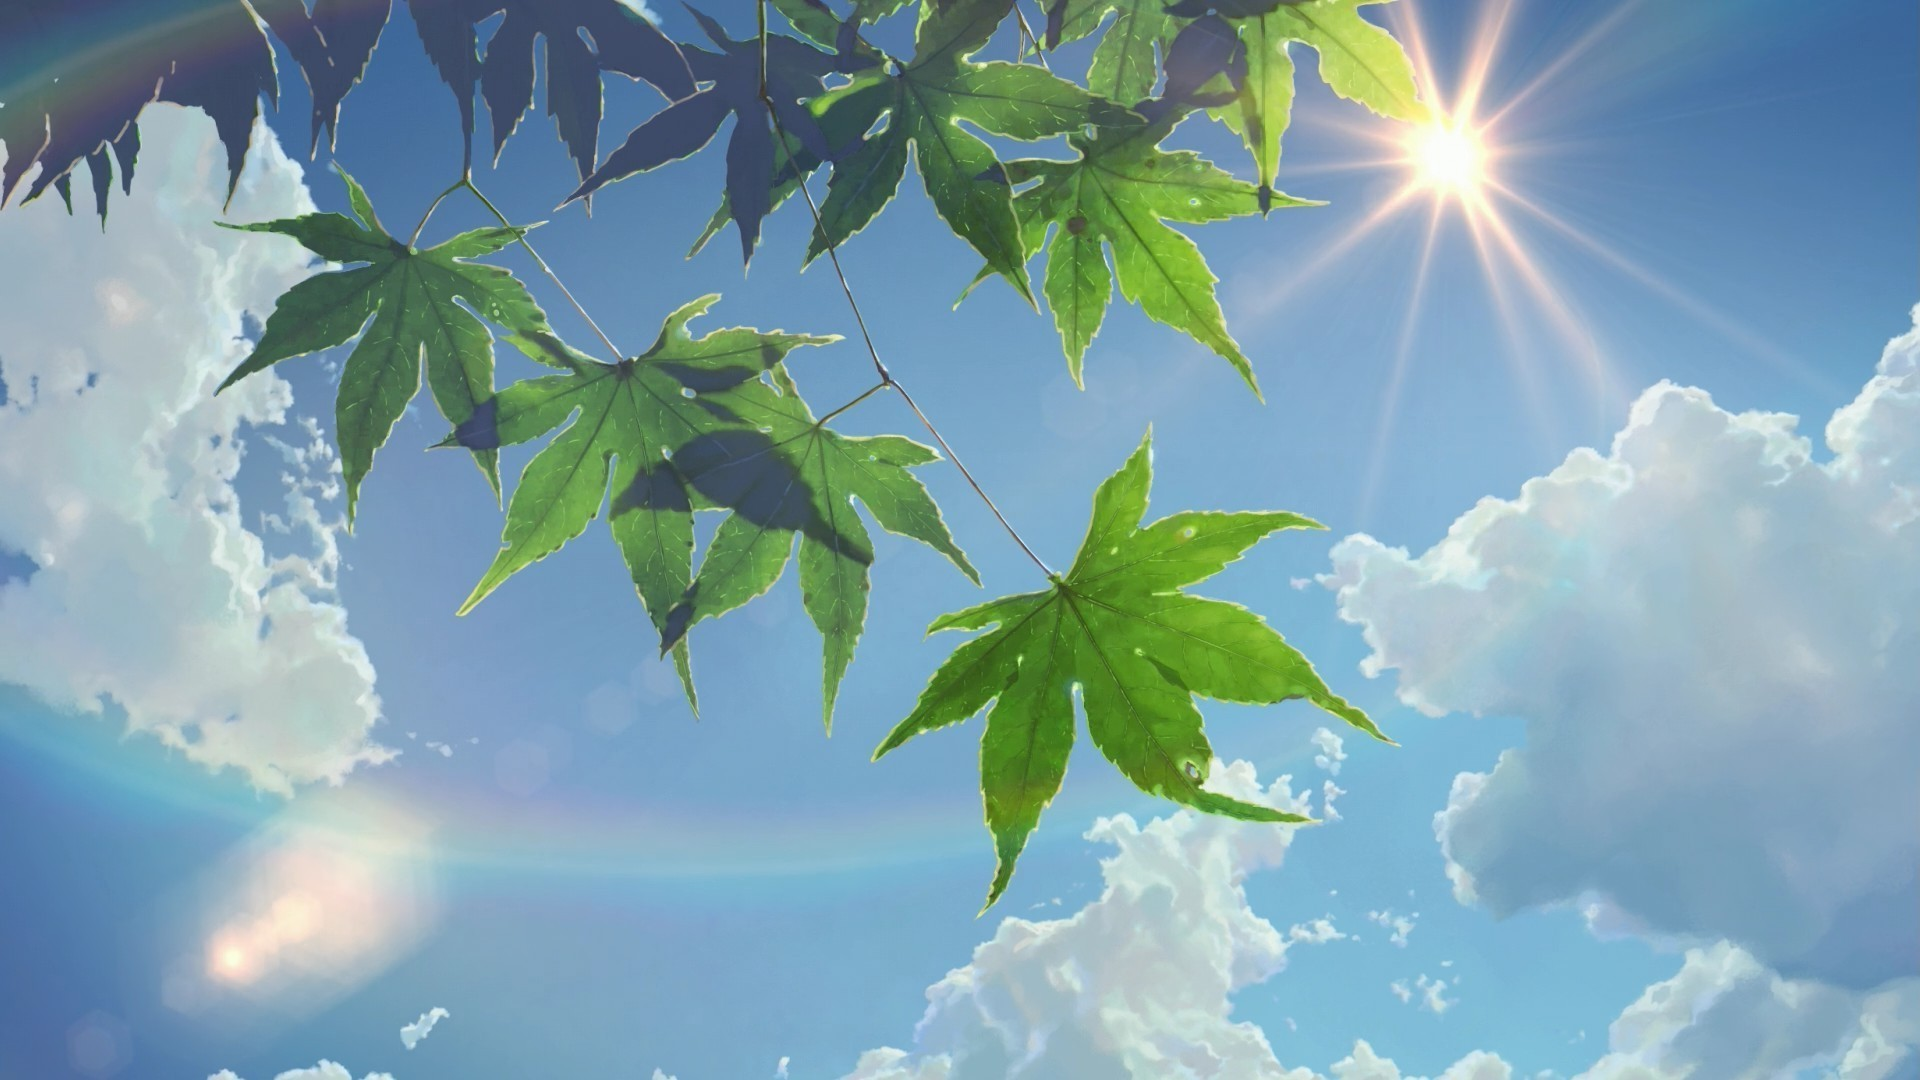 1920x1080 summer, Sunlight, Leaves, The Garden Of Words, Sun Rays, Clouds, Makoto  Shinkai Wallpapers HD / Desktop and Mobile Backgrounds